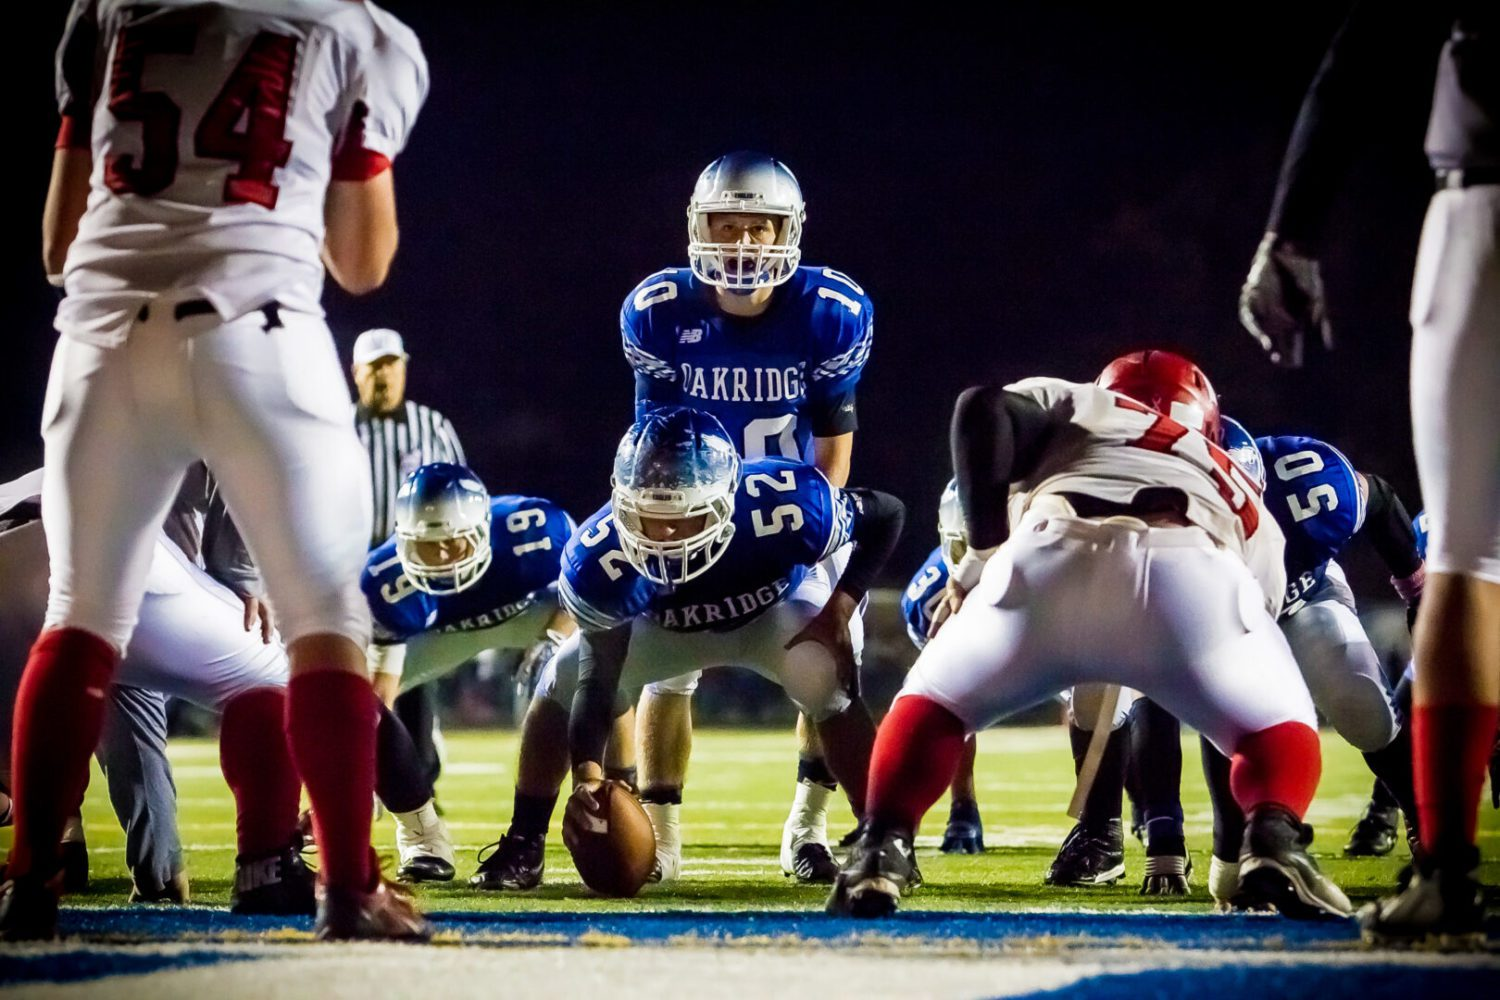 Oakridge takes command of conference football race with a 50-22 pounding of previously unbeated Whitehall